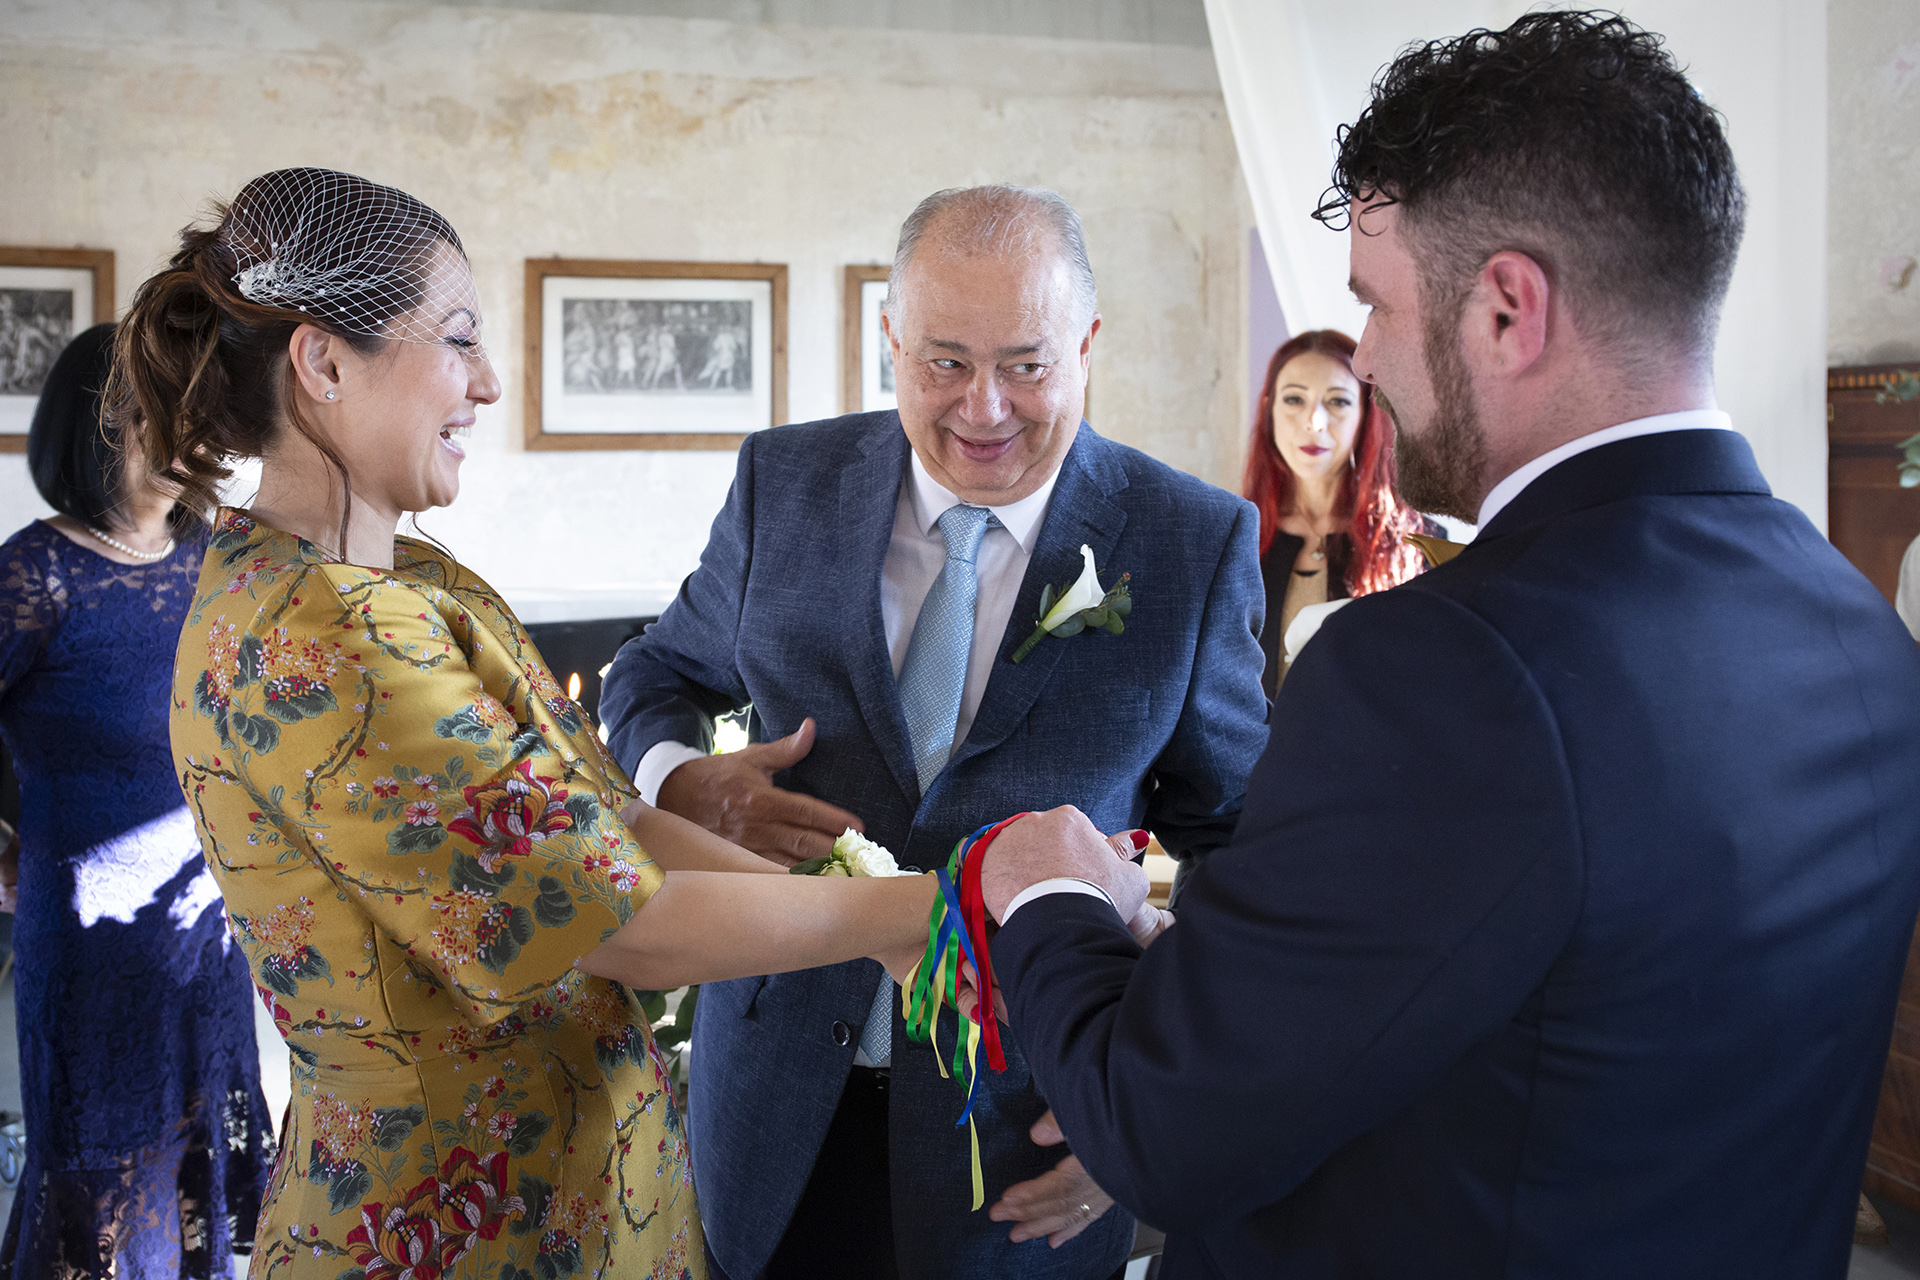 Villa Bossi Legal Civil Ceremony - Lake Varese Elopement Photo | The bride's father performs a special blessing by wrapping ribbon around the couple's wrists